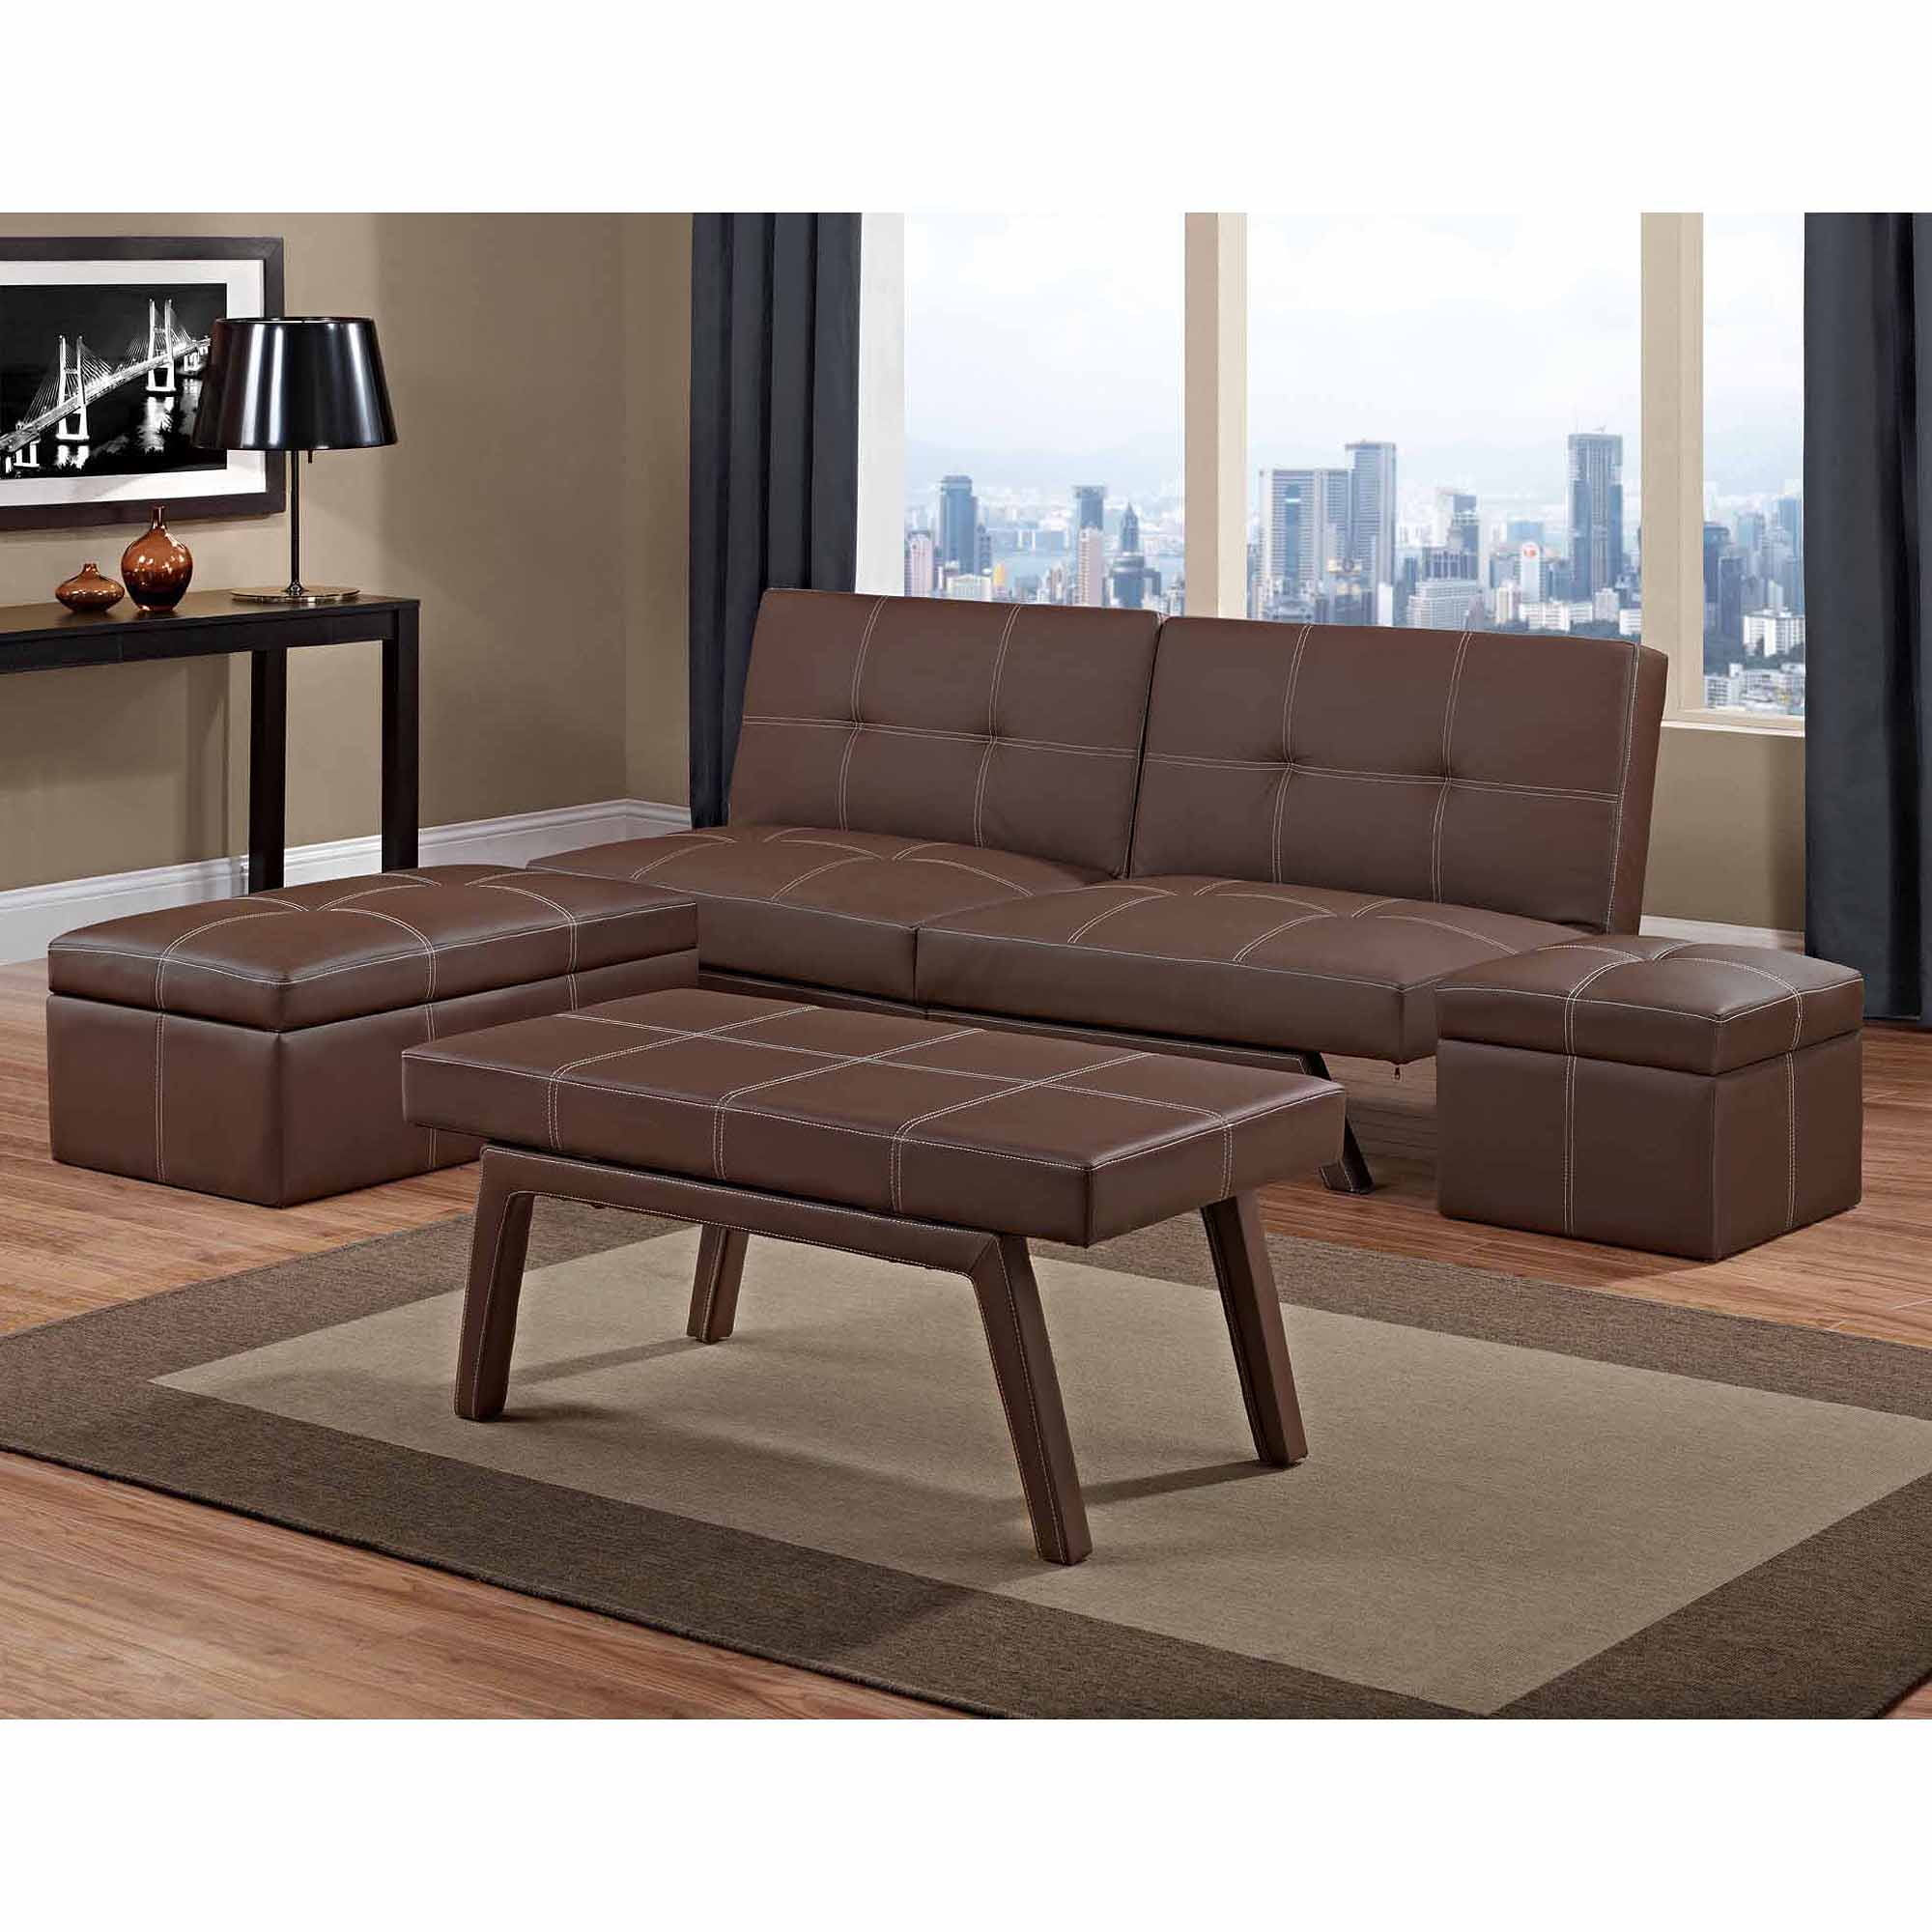 Delaney Living Room Furniture Collection